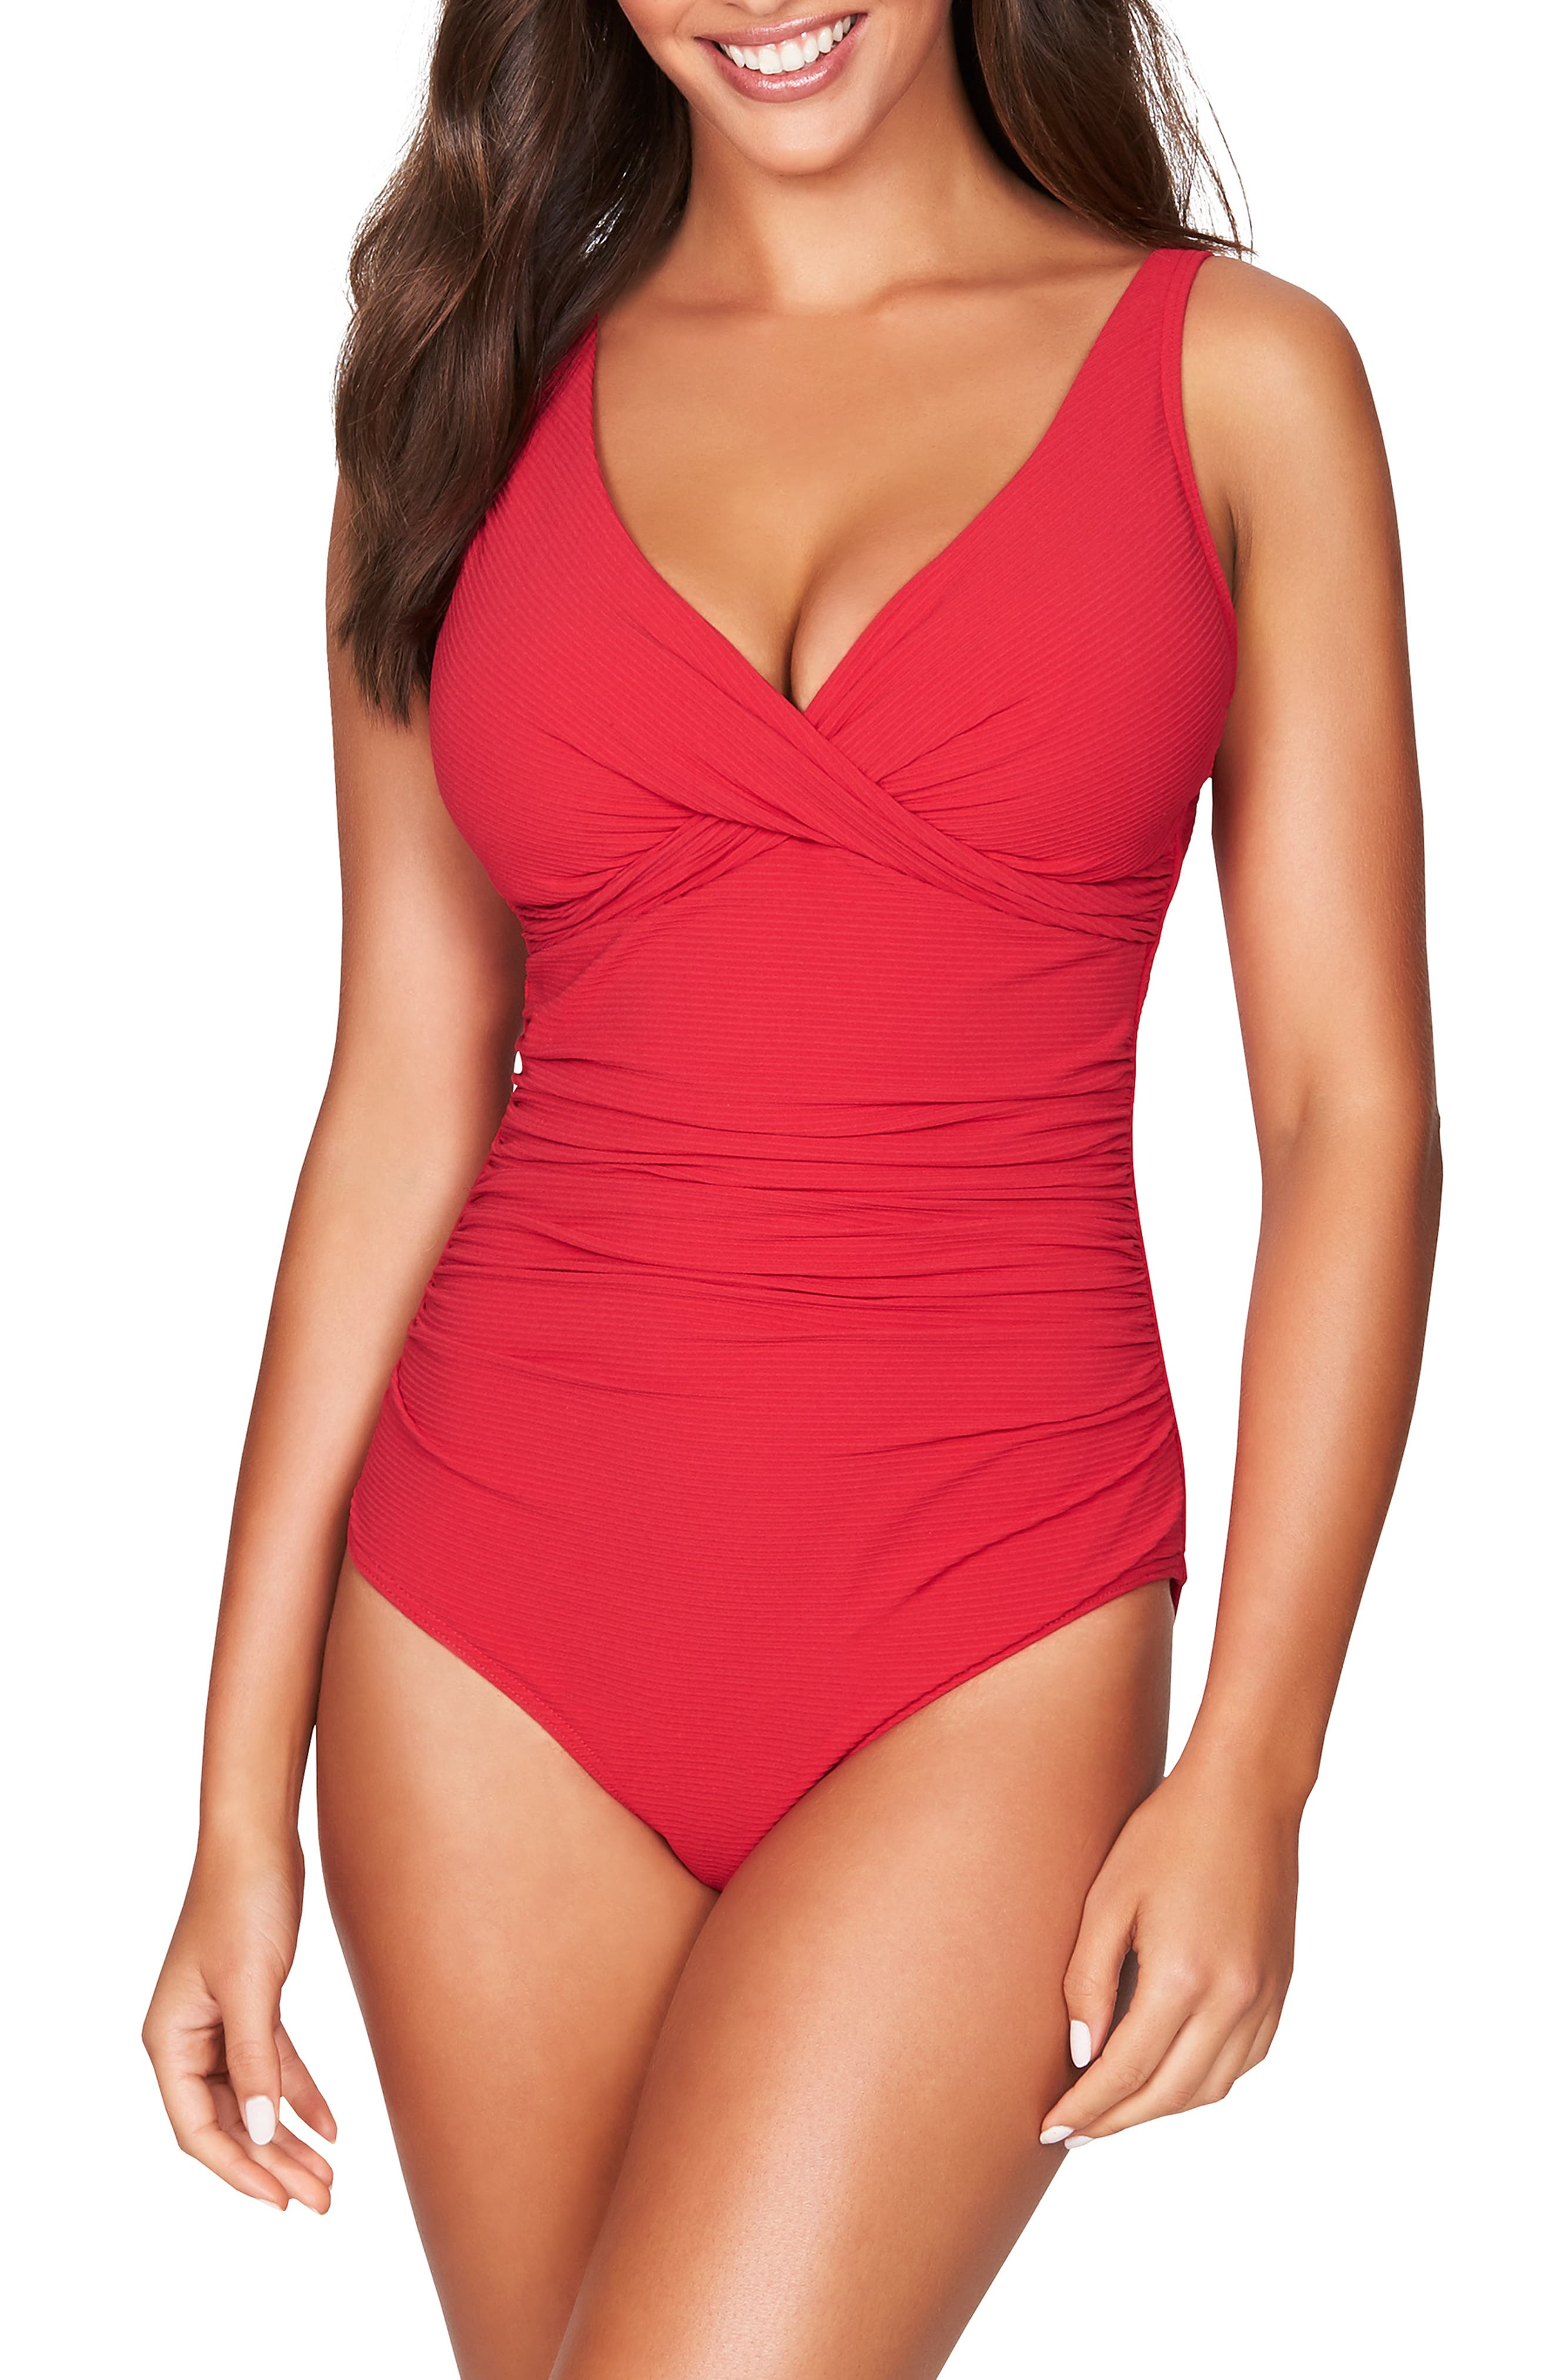 Sea Level Cross Front Multifit One-Piece Swimsuit, Red